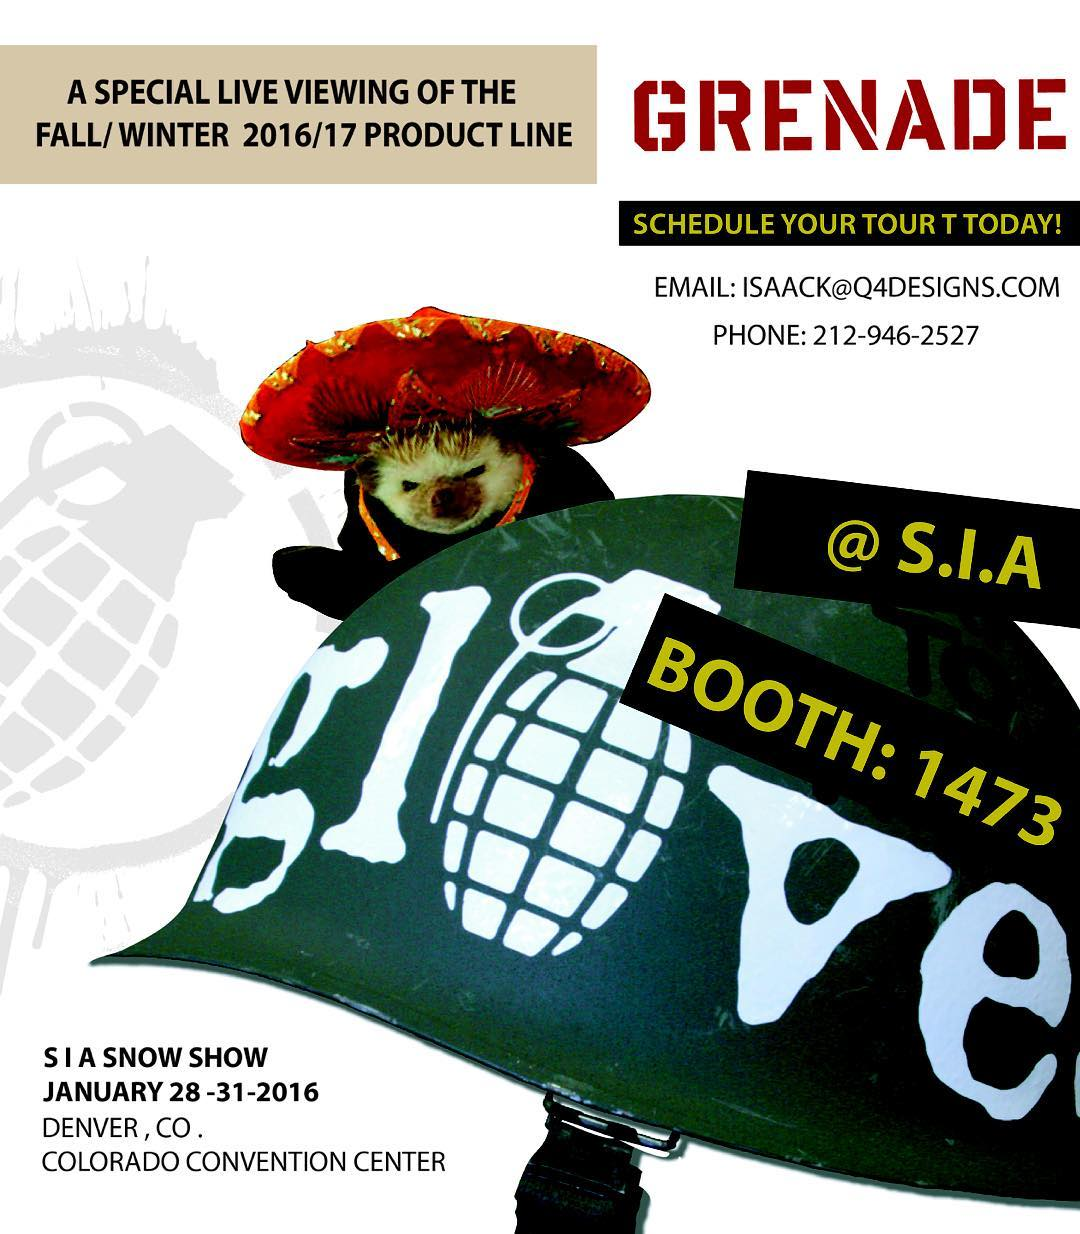 We have Top Secret information straight from General Kass.  If you are at SIA this year come visit booth 1473 to see the new product for Fall/ Winter 2017. Schedule an appointment with isaack@q4designs.com  #grenadegloves #topsecret #MakeGlovesNotWar #SIA